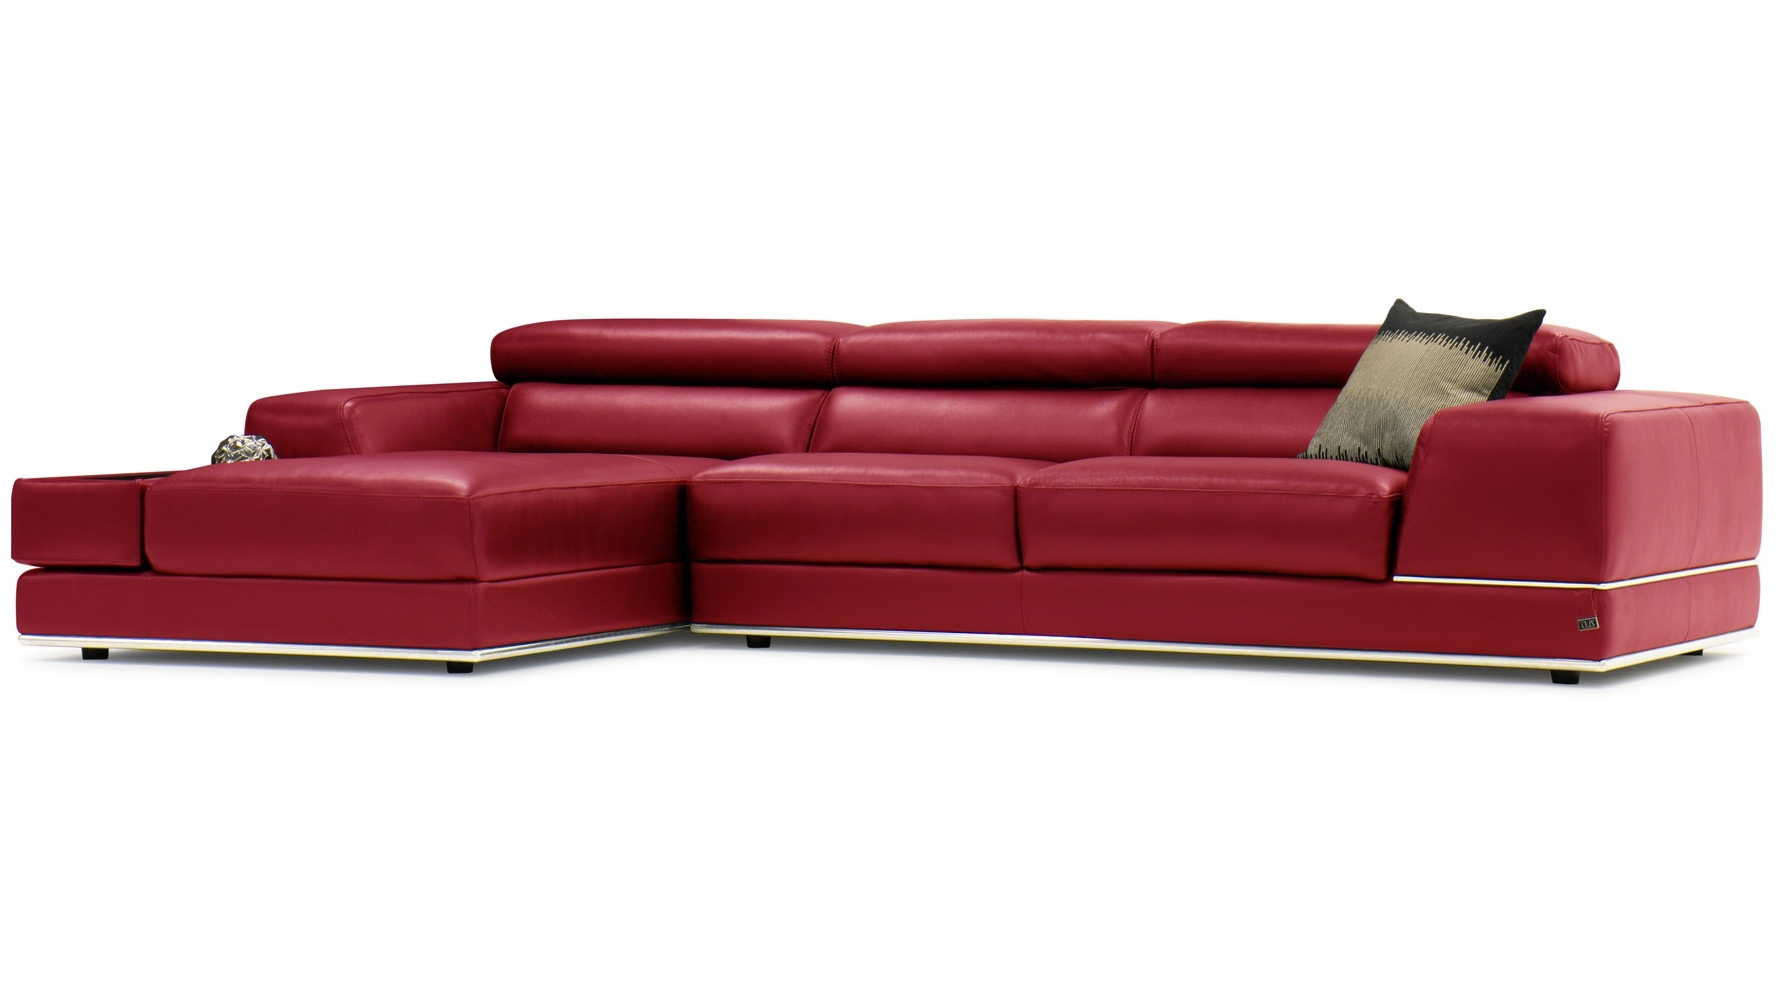 Red Leather Sofas Throughout Fashionable Encore Red Leather Sofa (View 4 of 15)